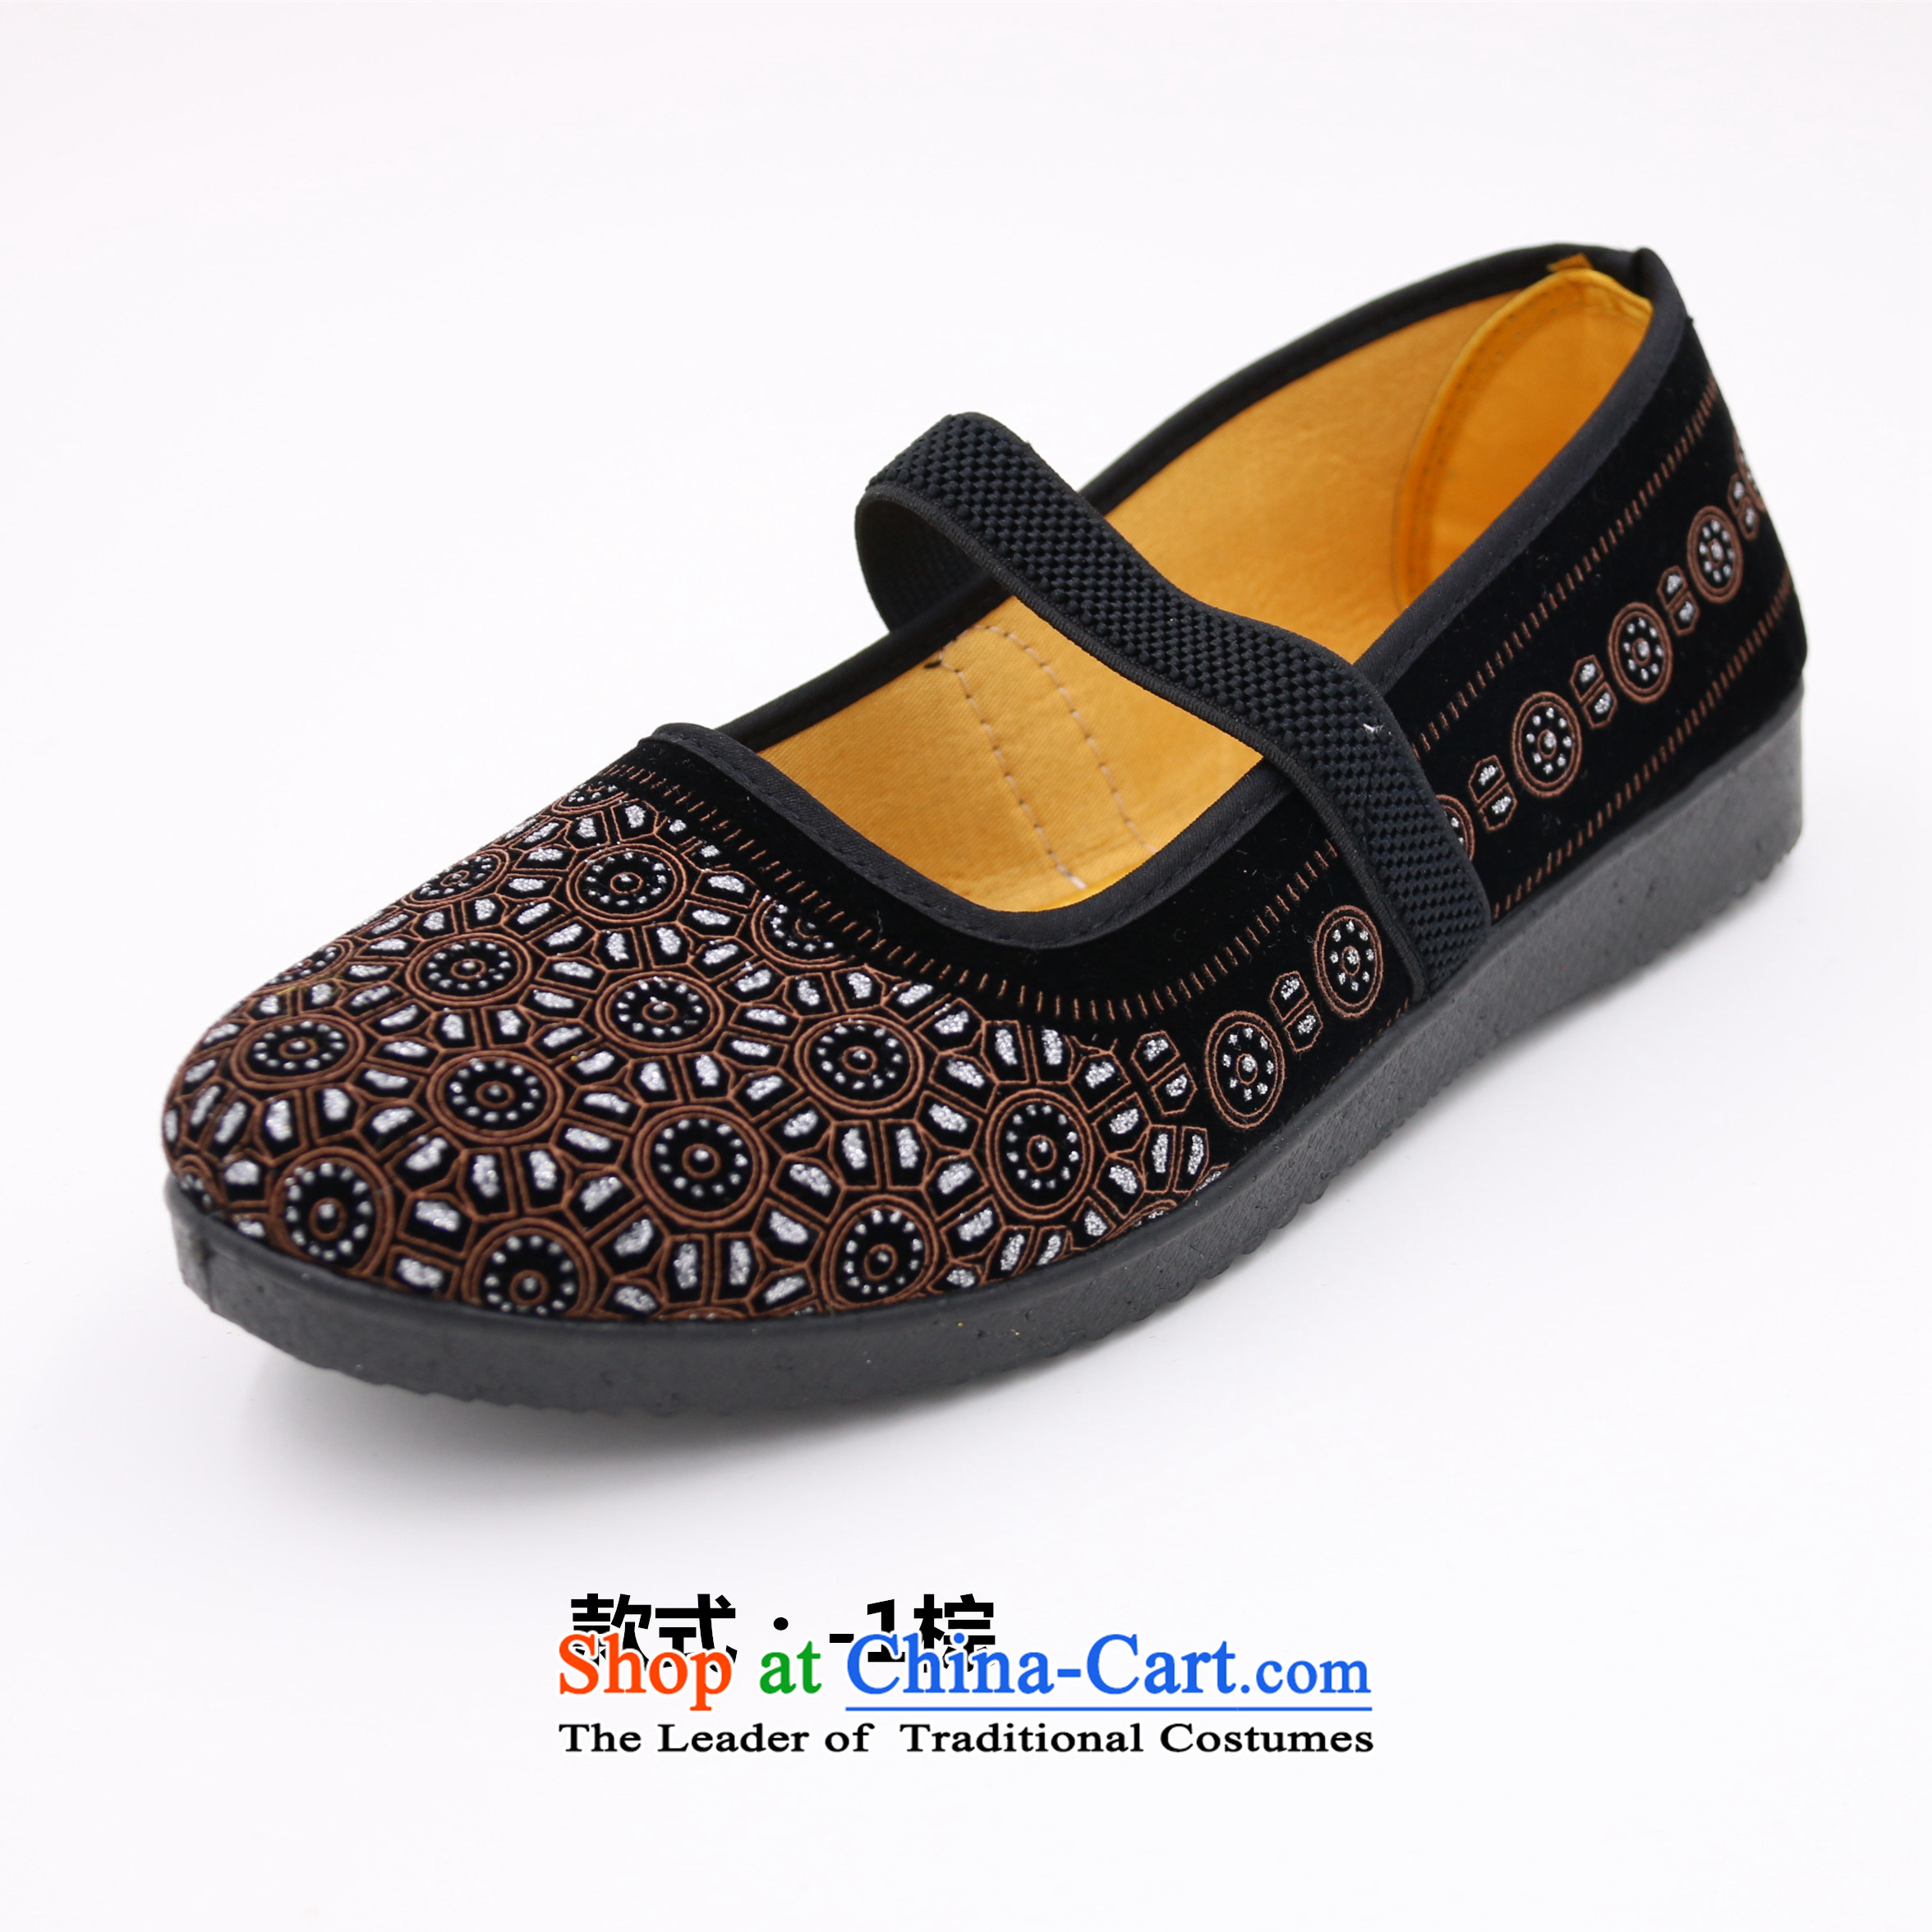 Nursing Shoes Online